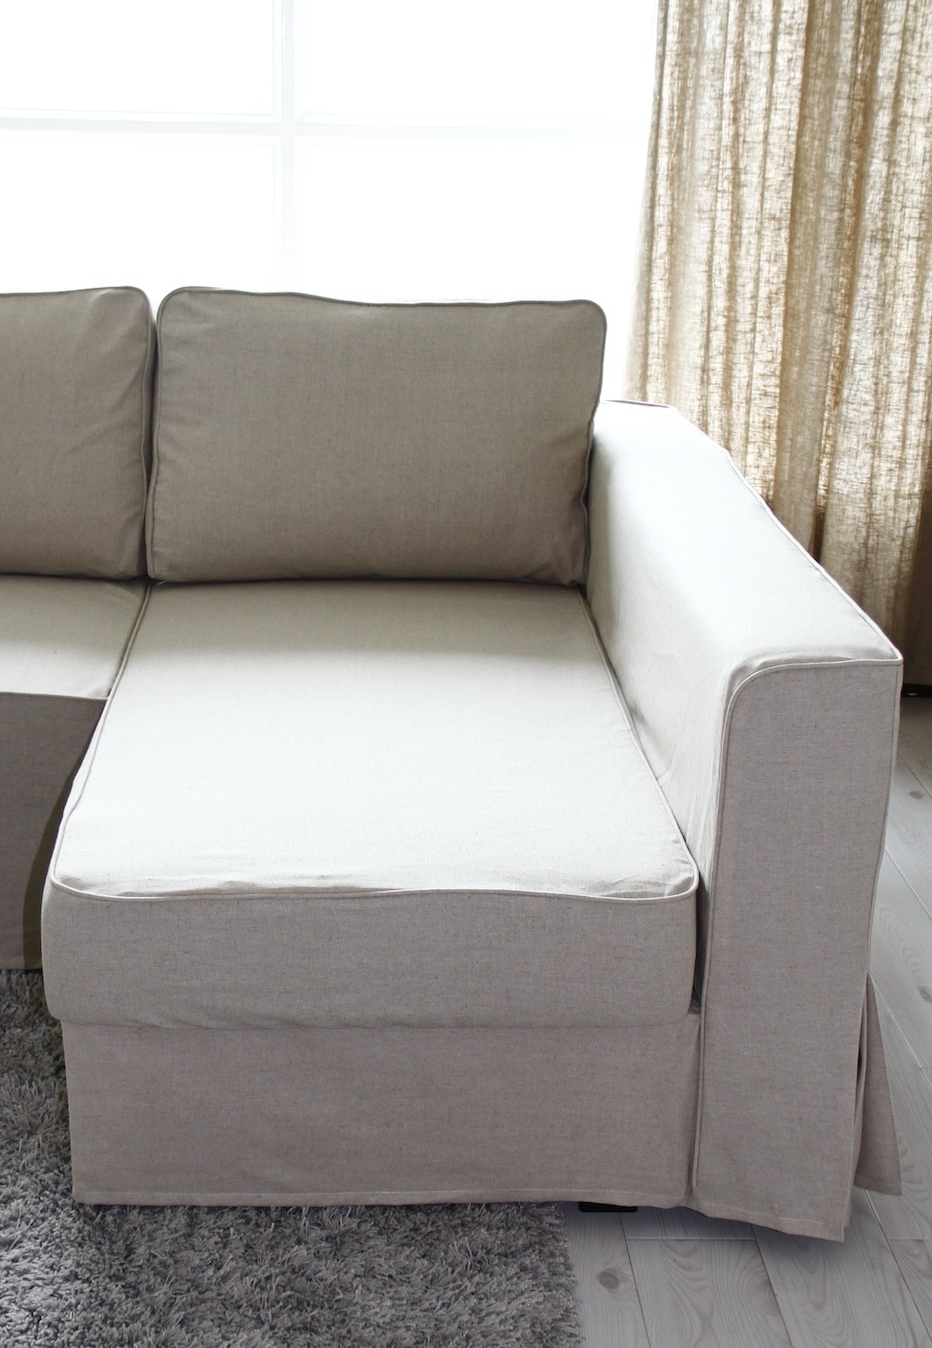 Fit Linen Manstad Sofa Slipcovers Now Available Intended For Famous Manstad Sofas (View 12 of 20)